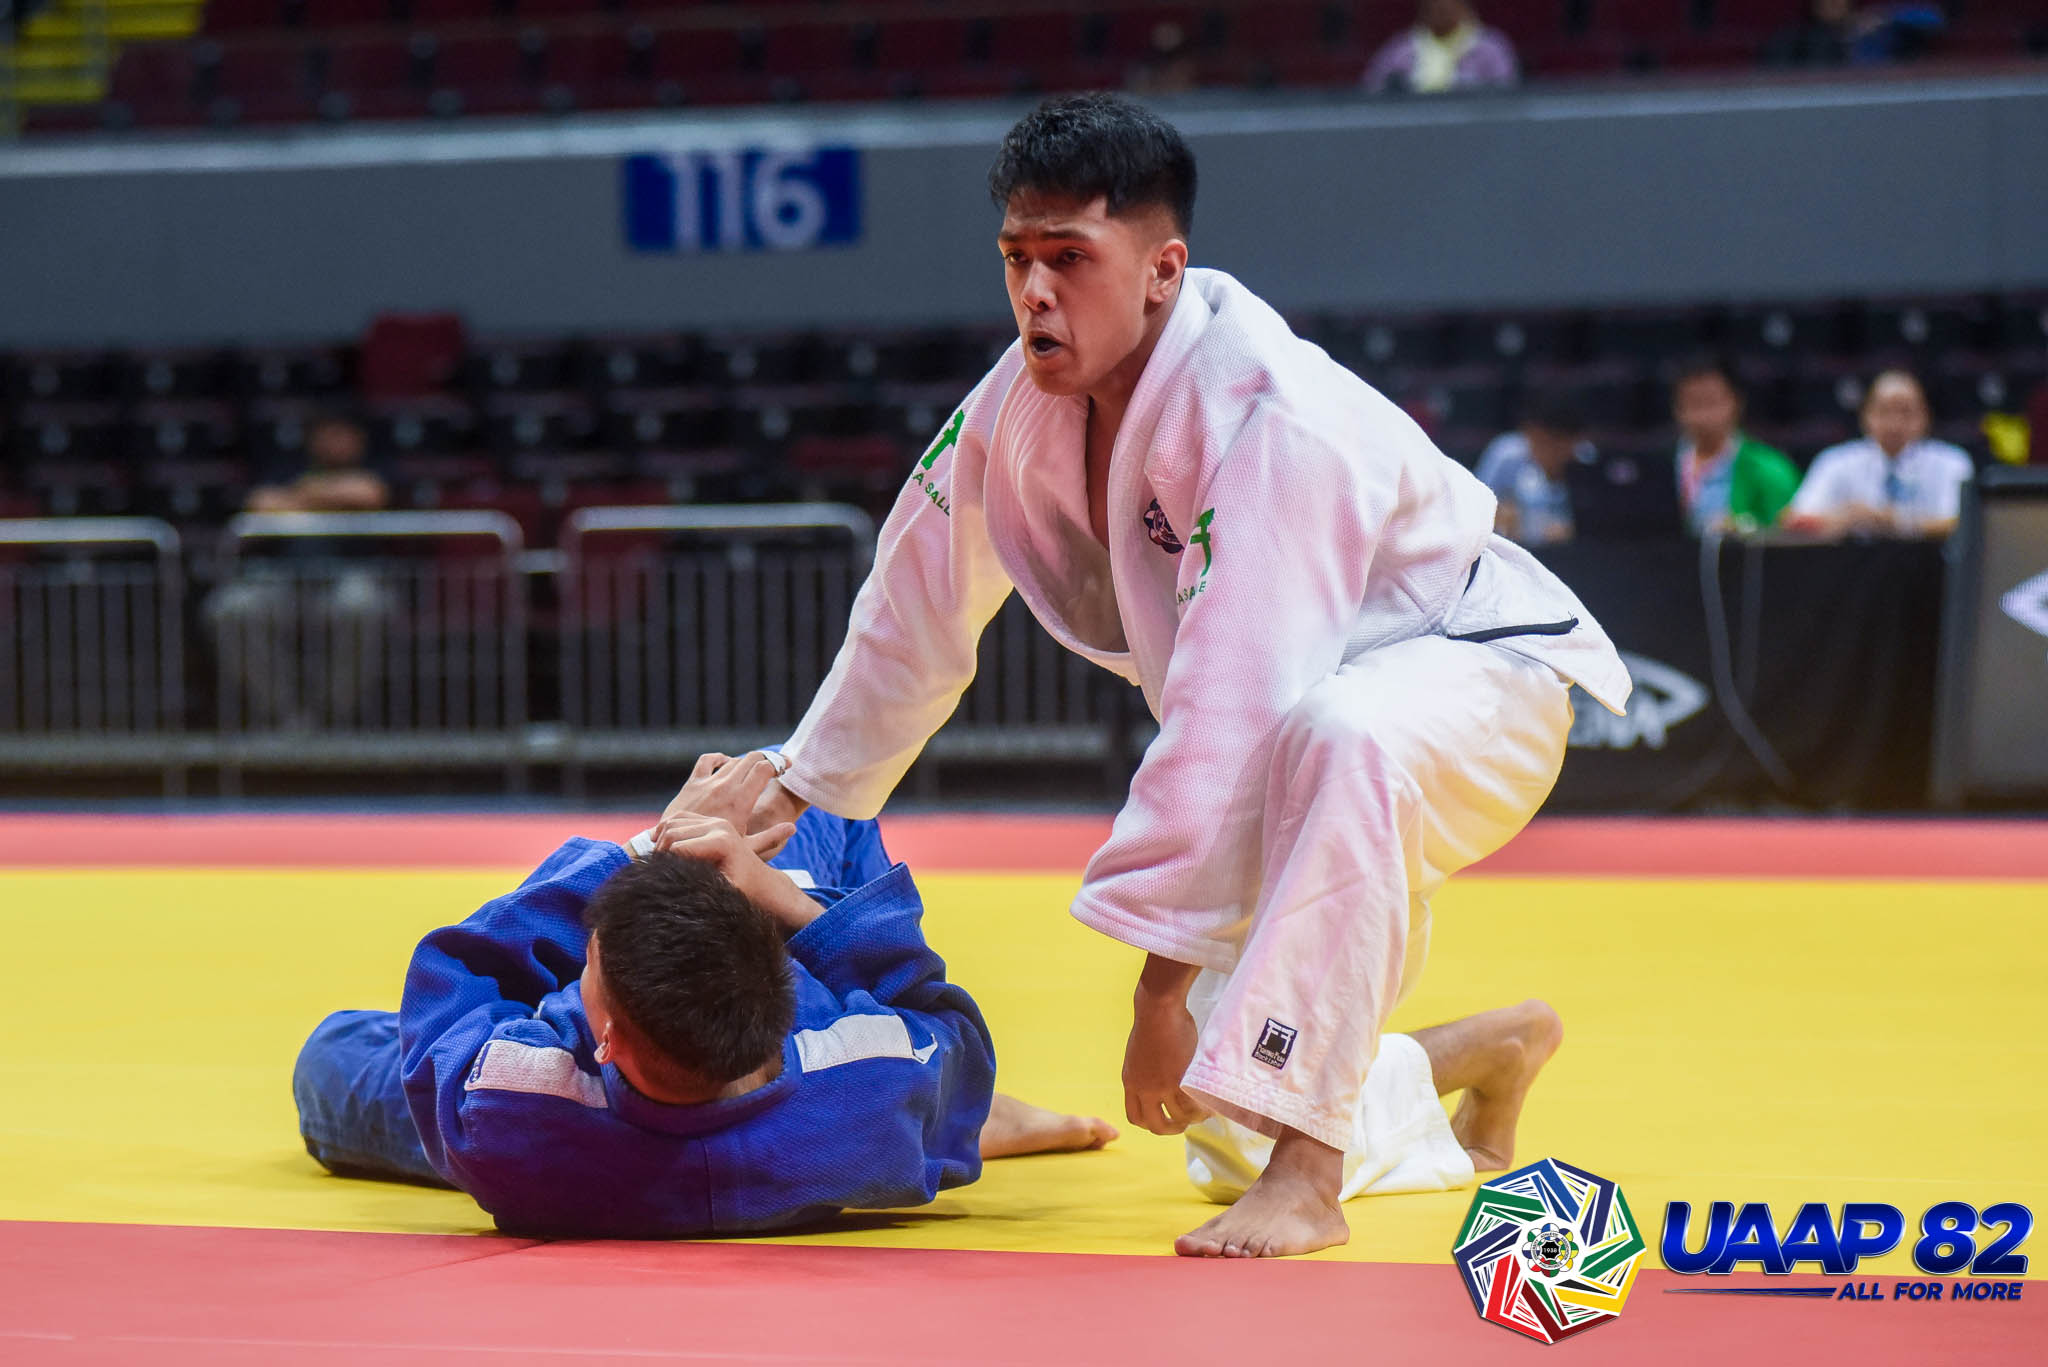 UAAP82-JUDO-JRS-73KG-BOYS-4TH-PHOTO-WHITE-SARIA-DLS-BLUE-DIONISIO-FEU Donaire, Saria lead DLSZ to surprising start in UAAP 82 HS Judo as Quimba sisters give UST early lead ADMU DLSU FEU Judo News UAAP UE UST  - philippine sports news